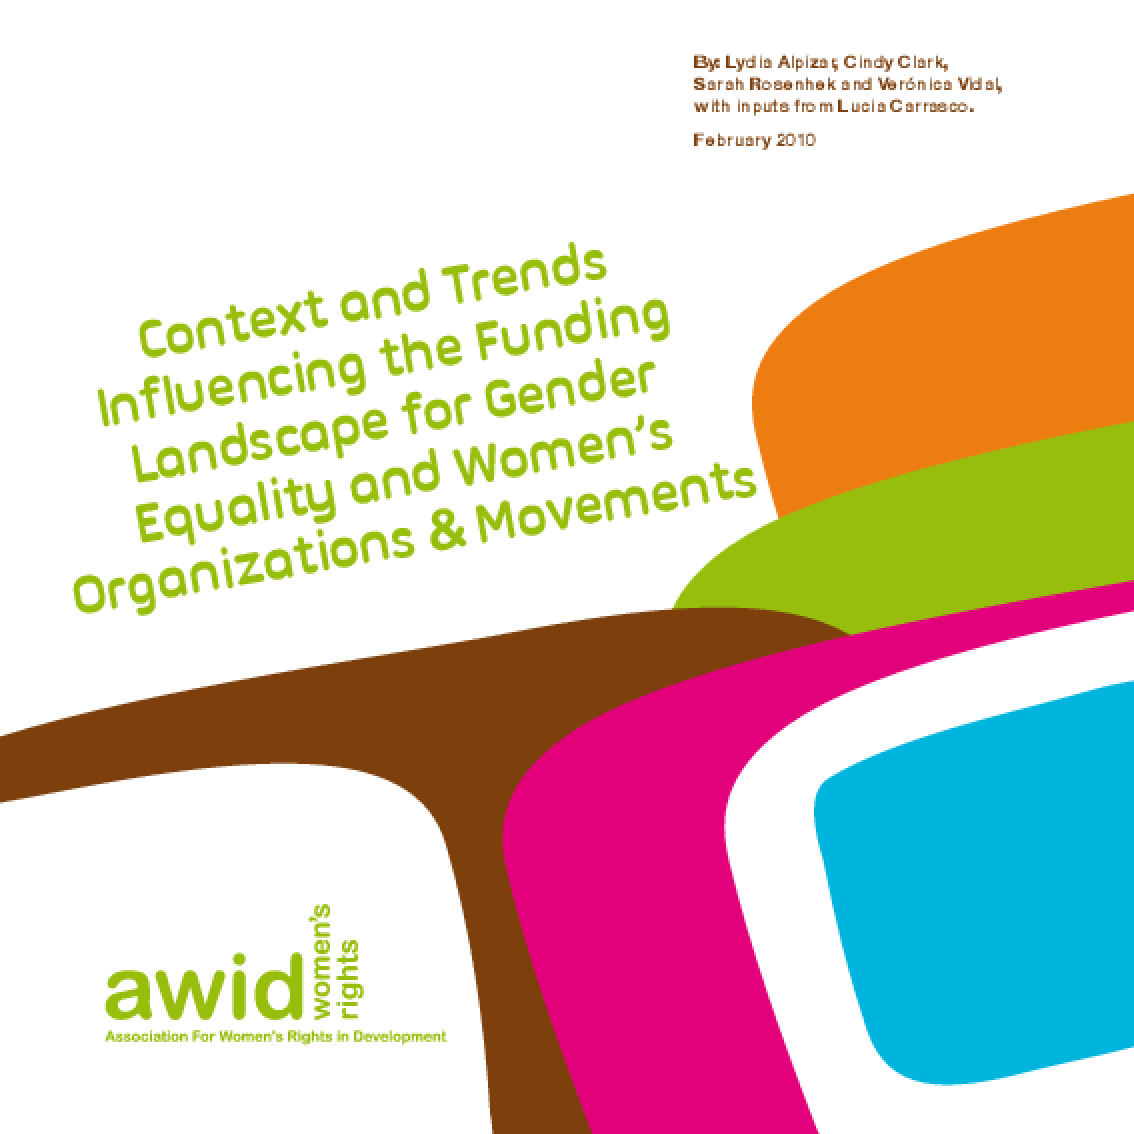 Context and Trends Influencing the Funding Landscape for Gender Equality and Women's Organization and Movements